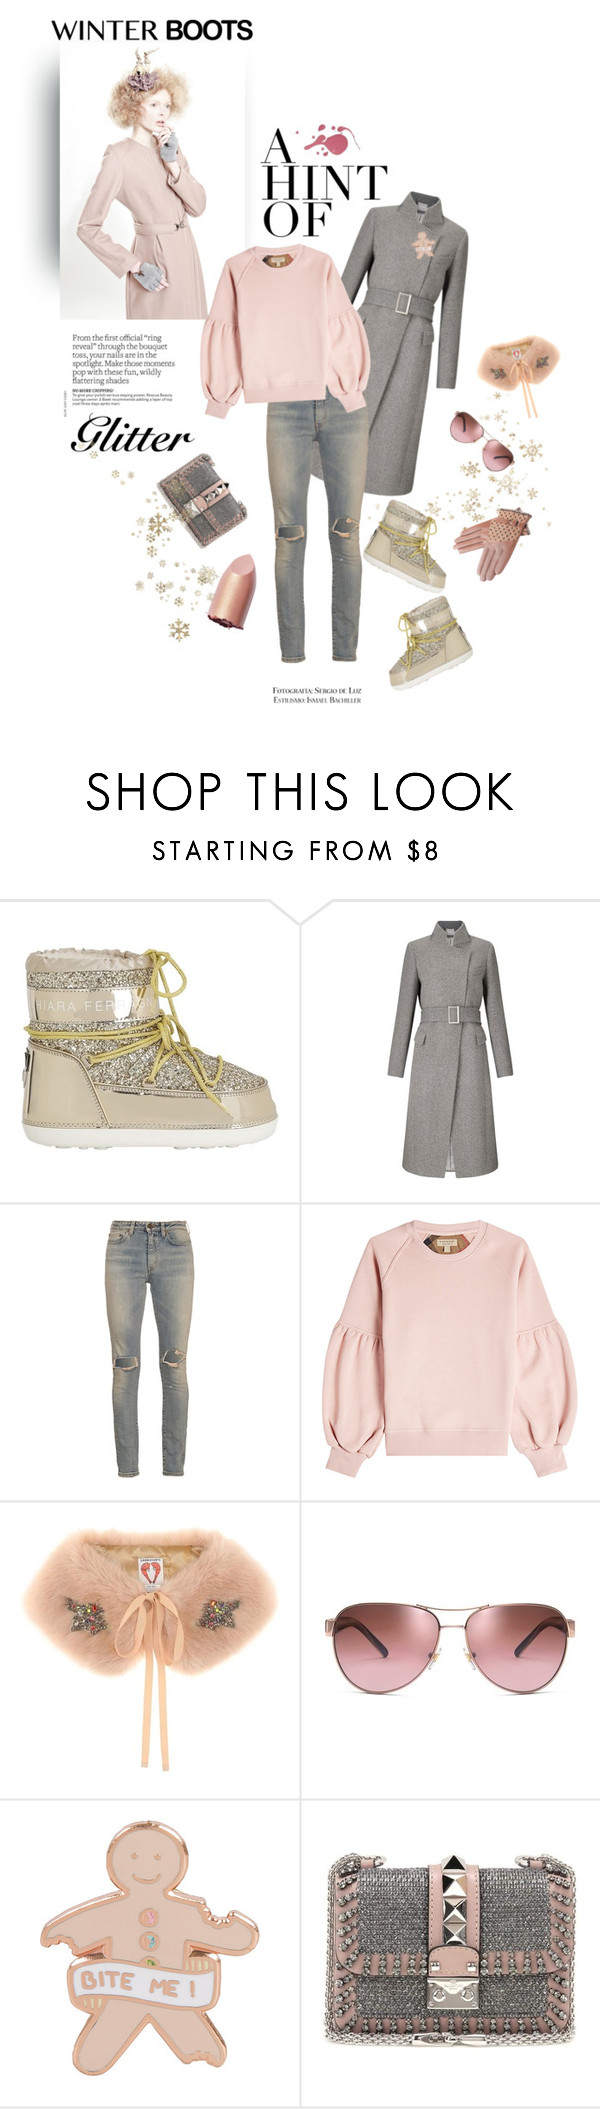 """""""there is no such thing as too much glitter"""" by iriadna ❤ liked on Polyvore featuring Yuliya Babich, Chiara Ferragni, Yves Saint Laurent, Burberry, Shrimps, Tory Burch, Valentino, Pink, rippedjeans and pinkandgray"""